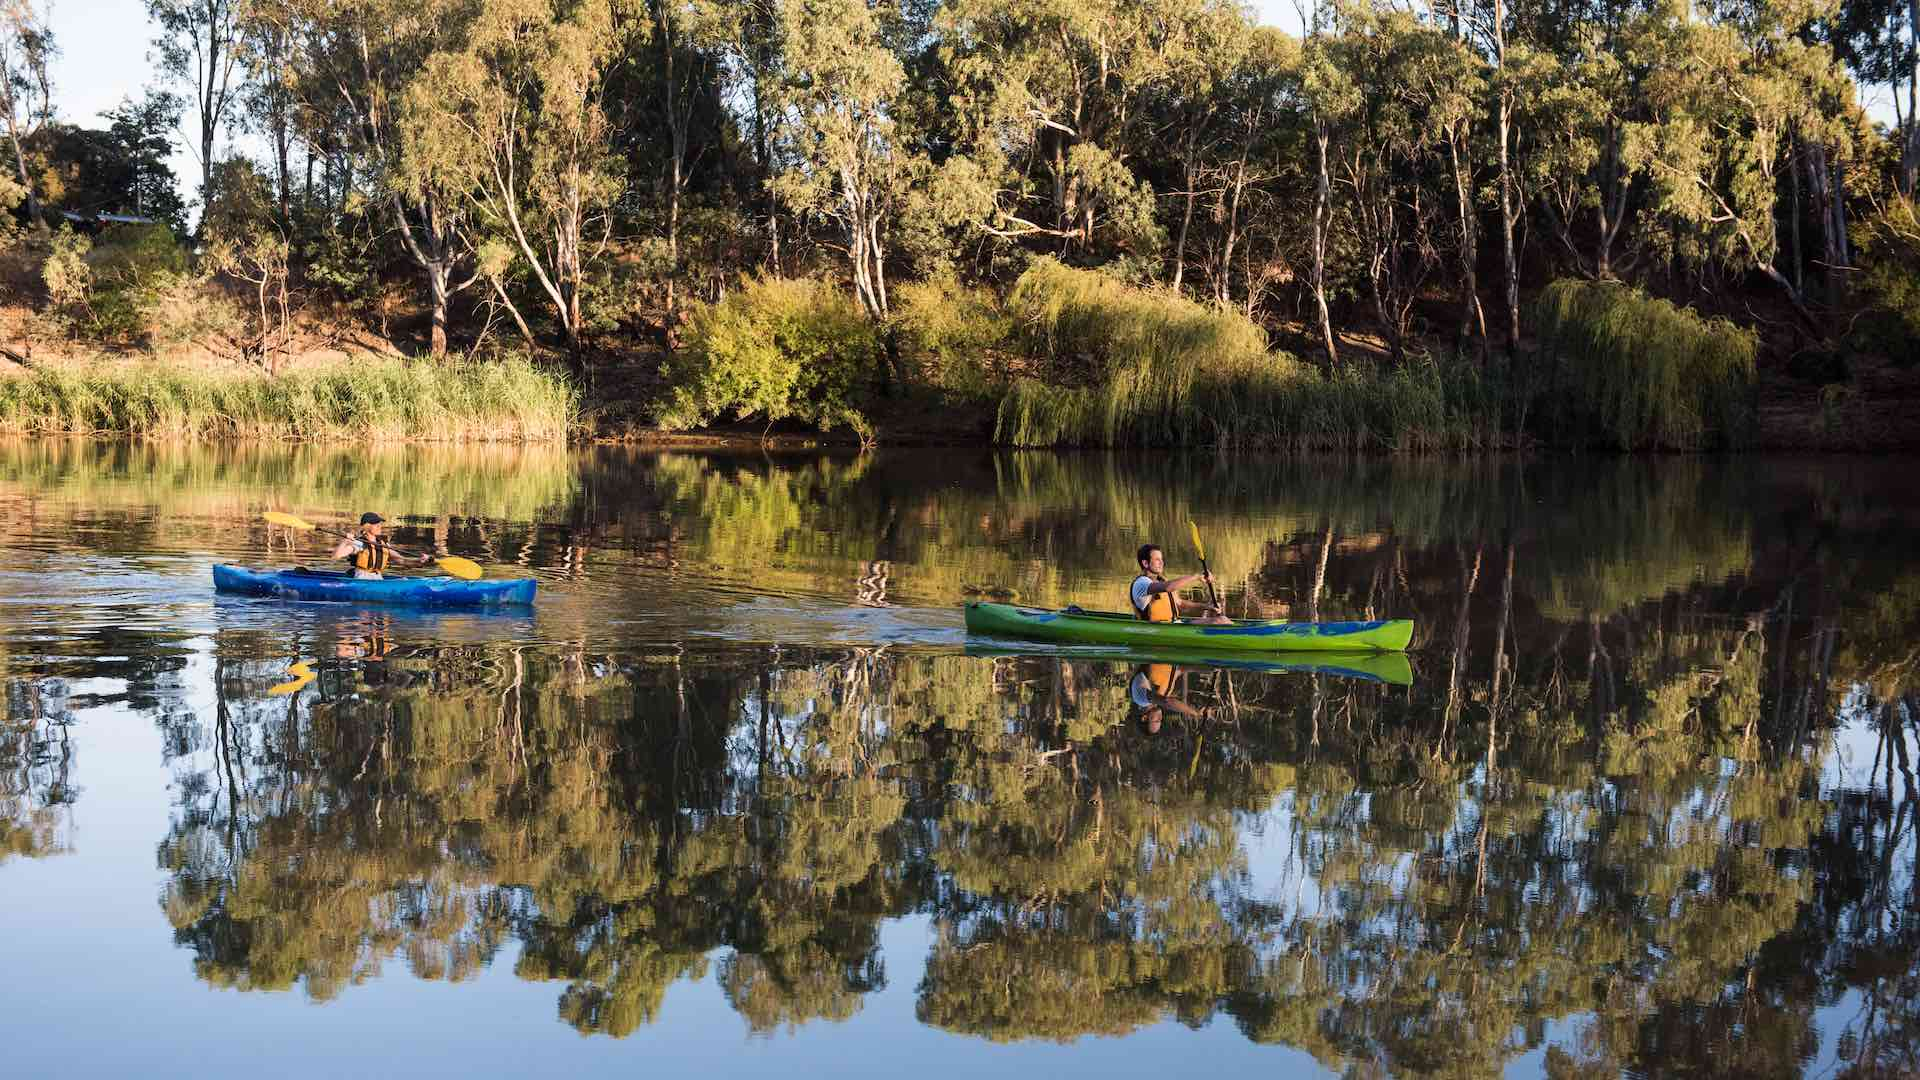 Kayaking on the Murray River at Wills Bend near Echuca